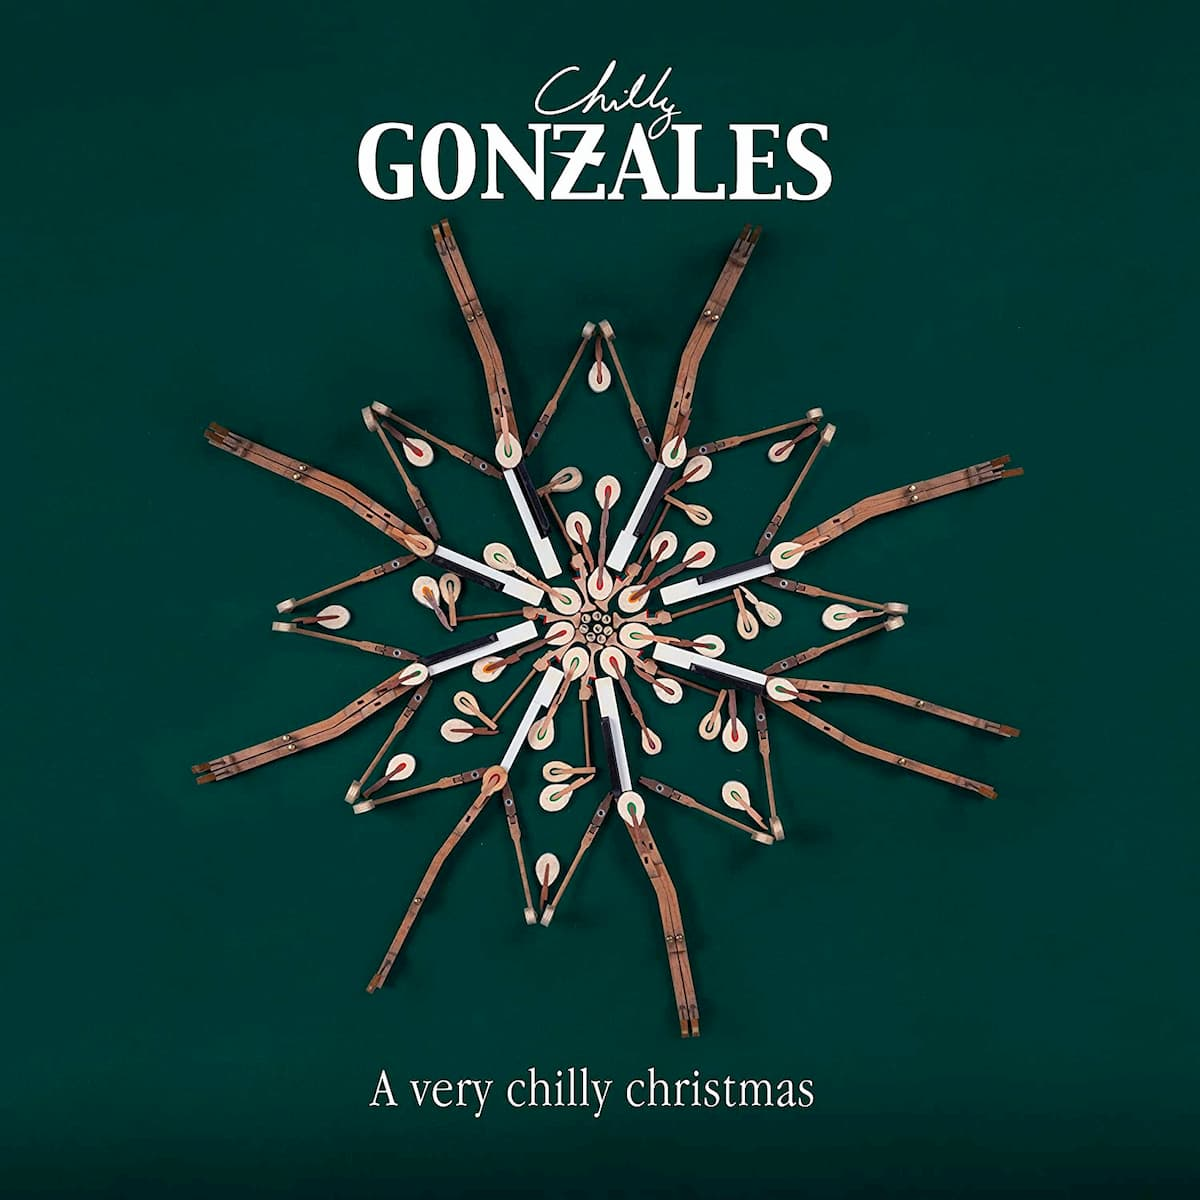 Chilly Gonzales - A Very Chilly Christmas 2020